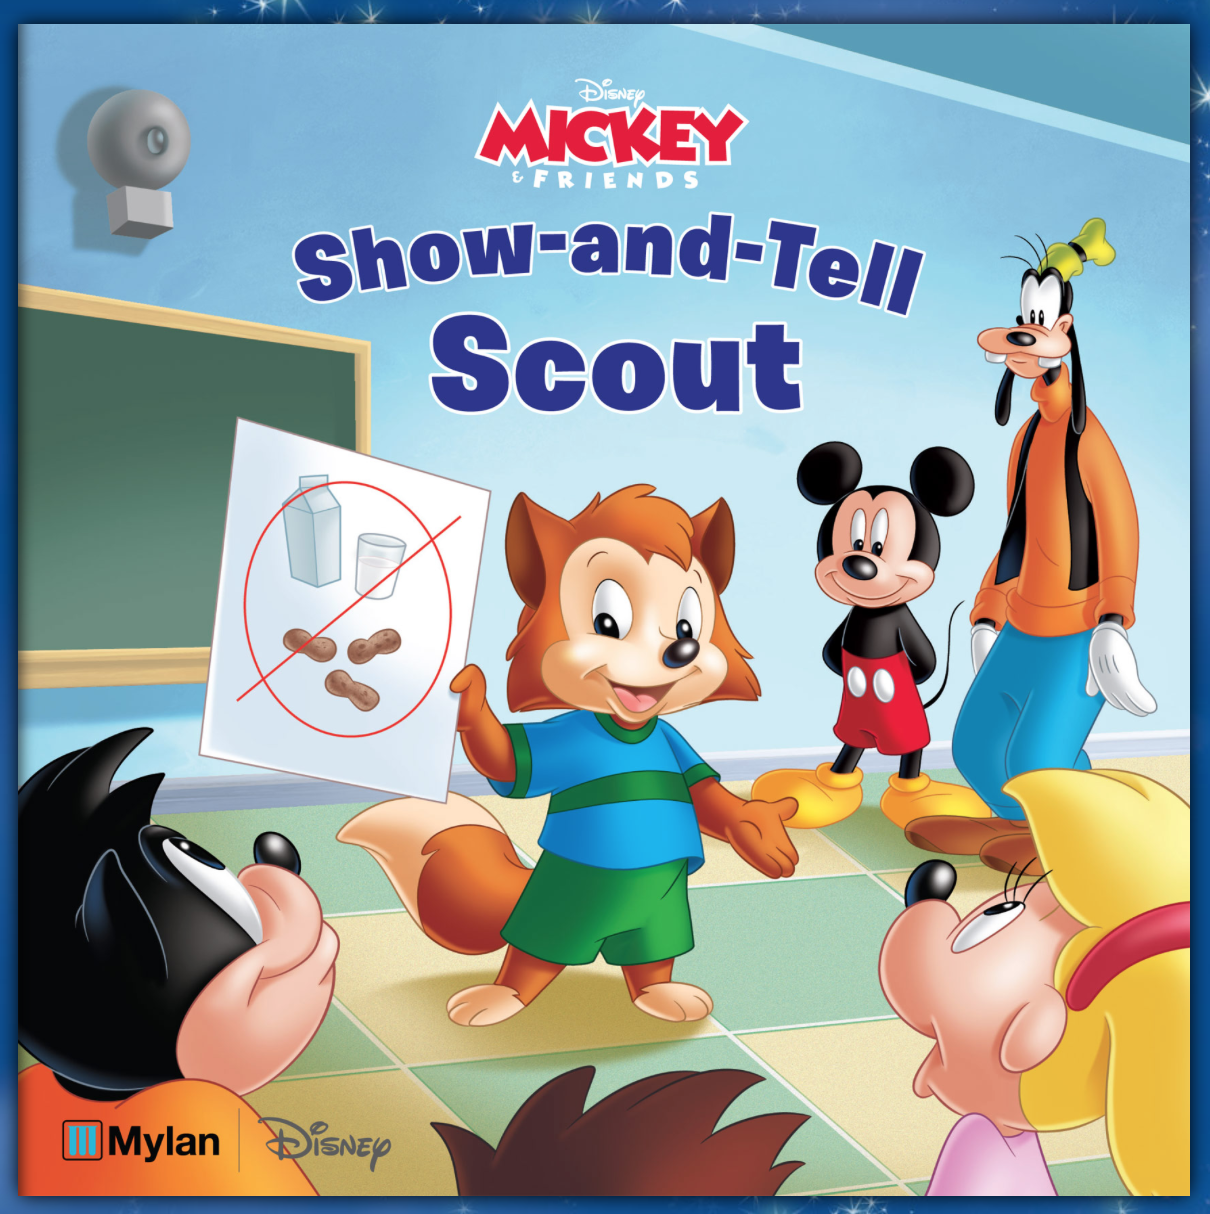 Show and Tell Scout - A Story about severe food allergies in school.